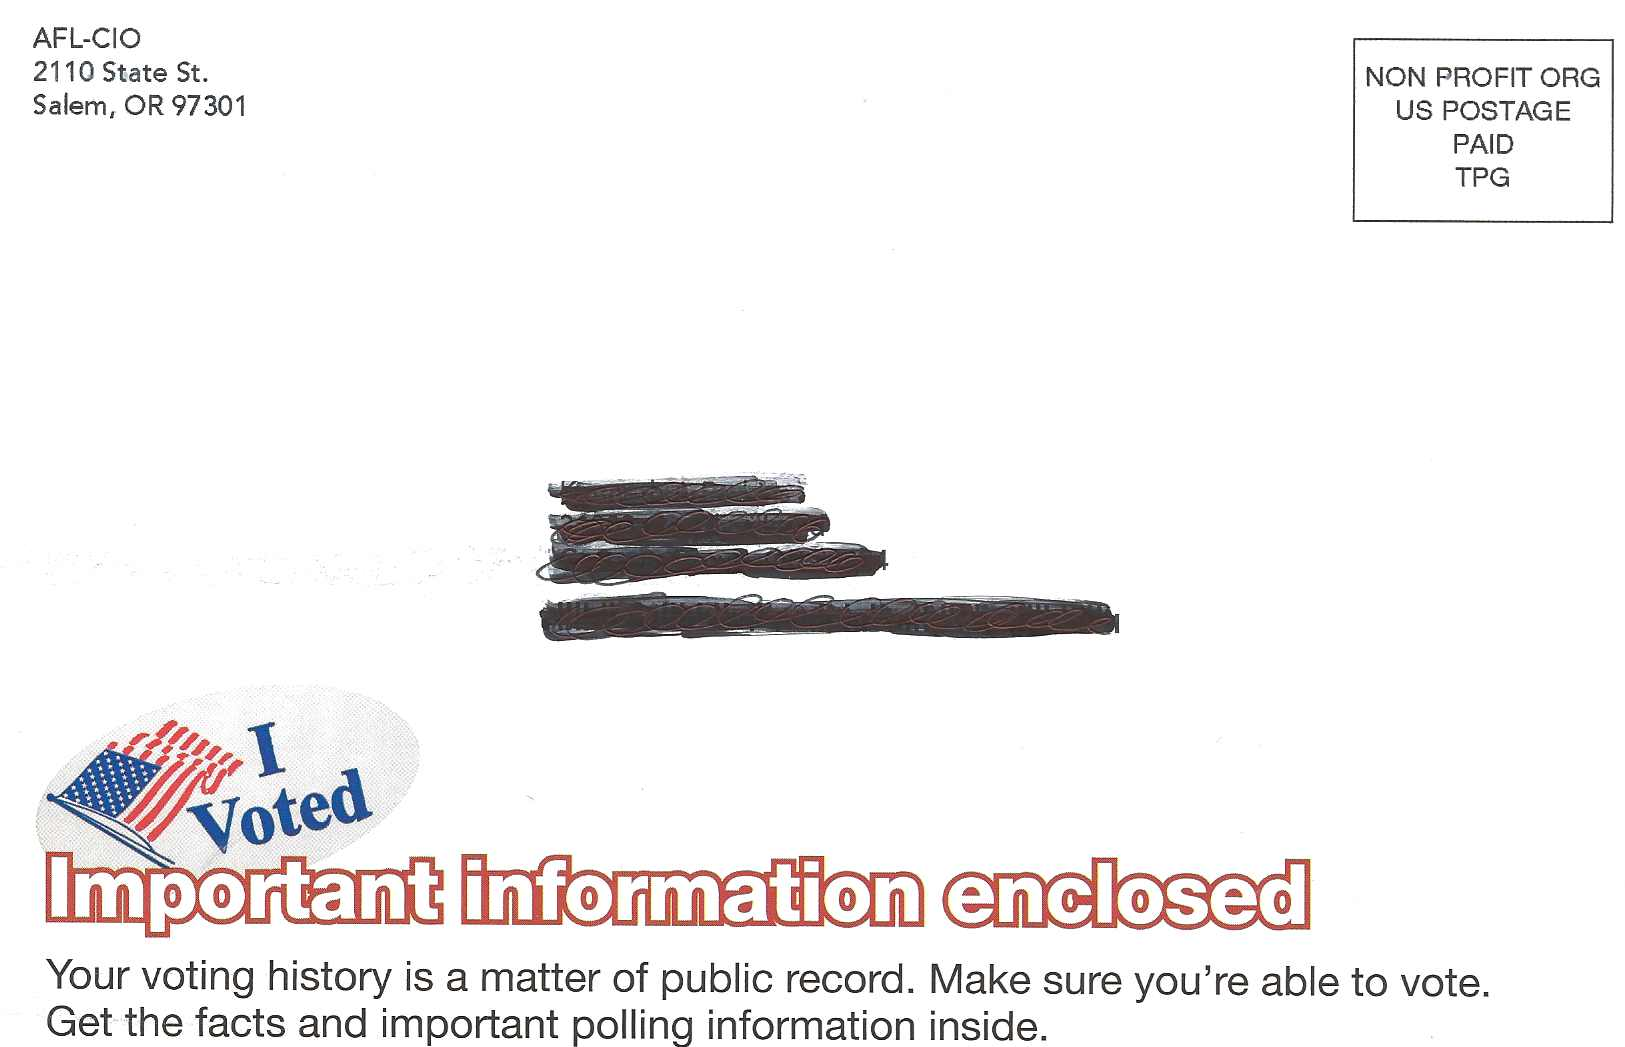 AFL-CIO Warns Oregon Voters: 'Your voting history is a matter of public record'